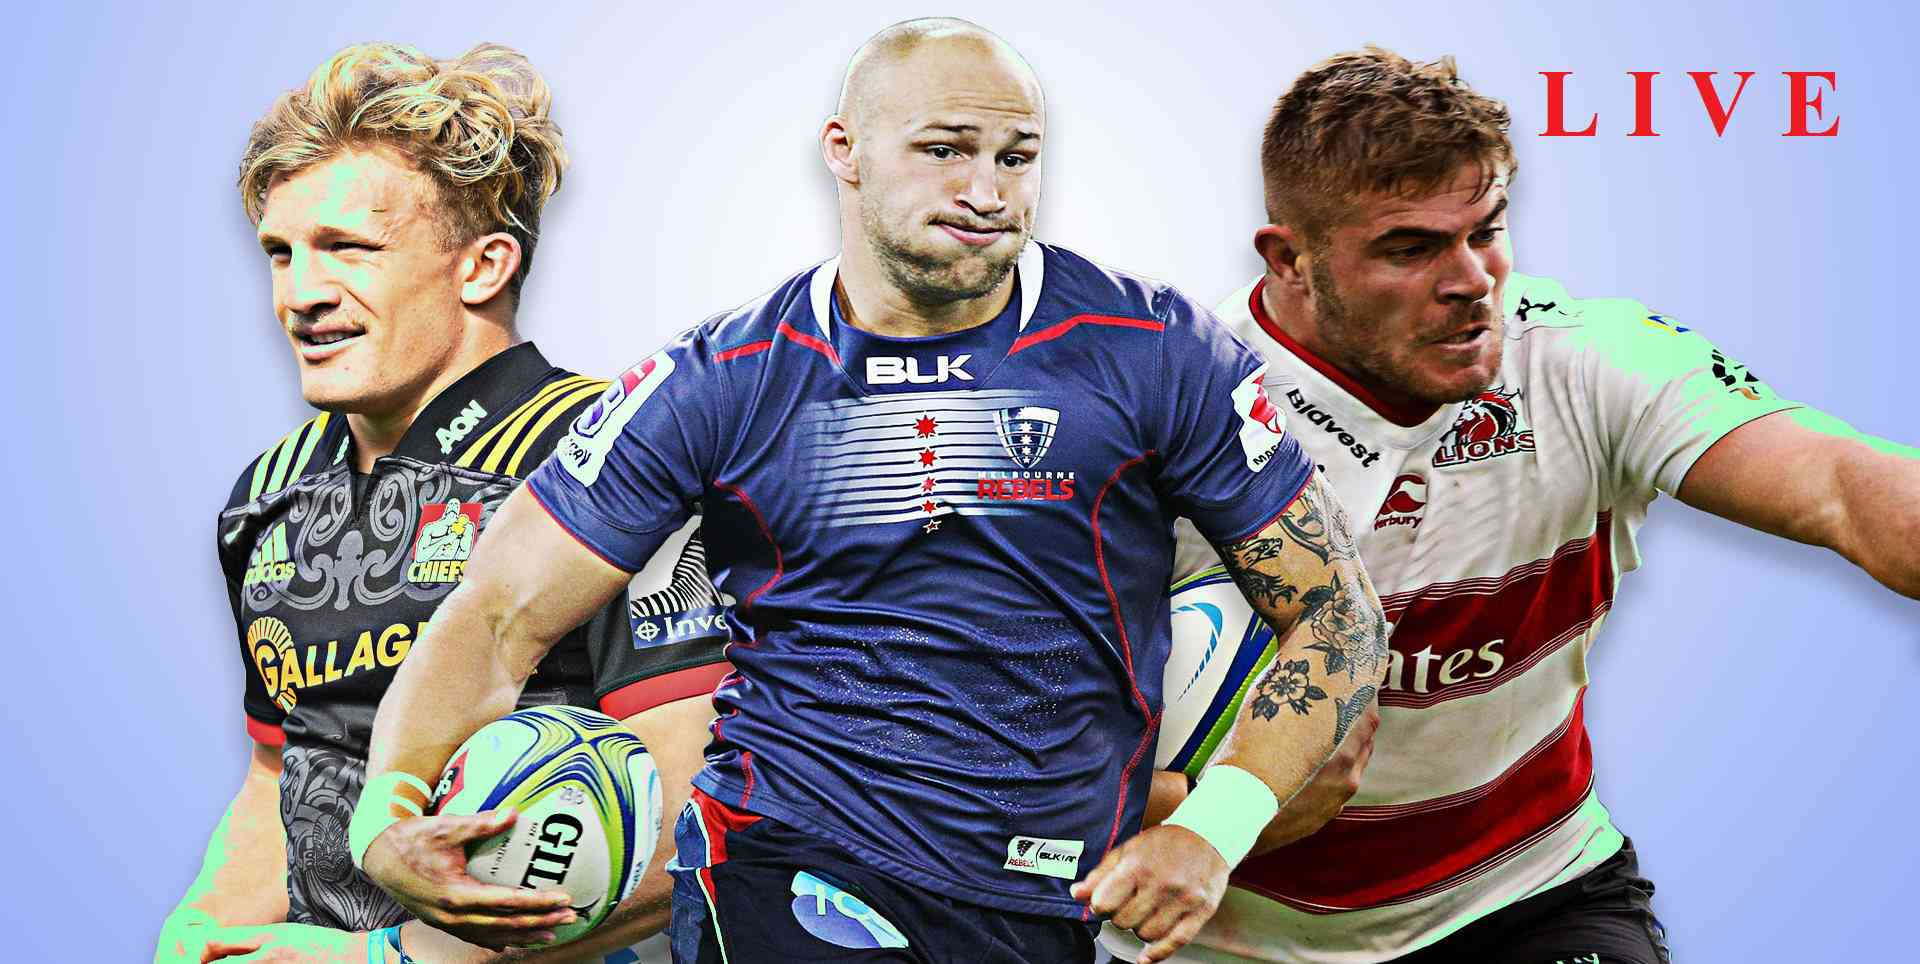 live-france-vs-samoa-rugby-stream